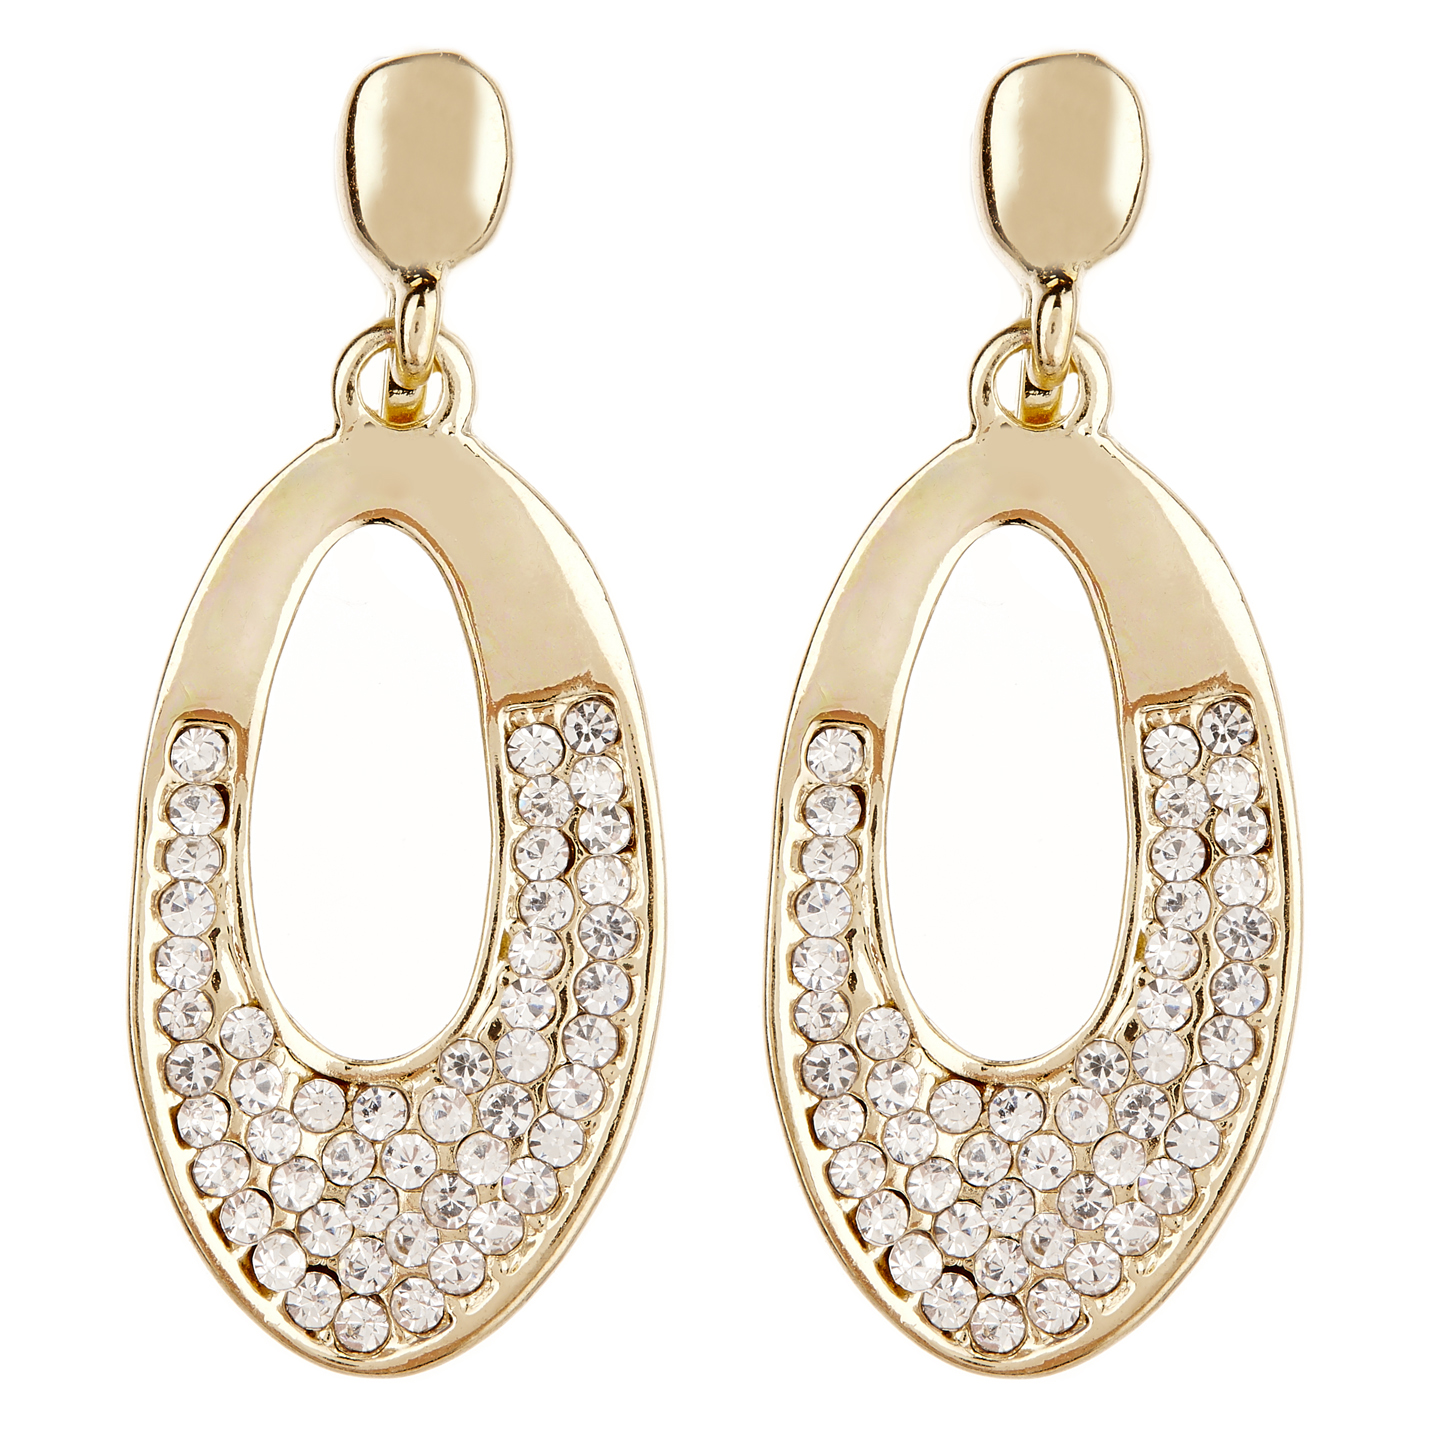 Clip On Earrings - Cathy G - gold earring with clear crystals